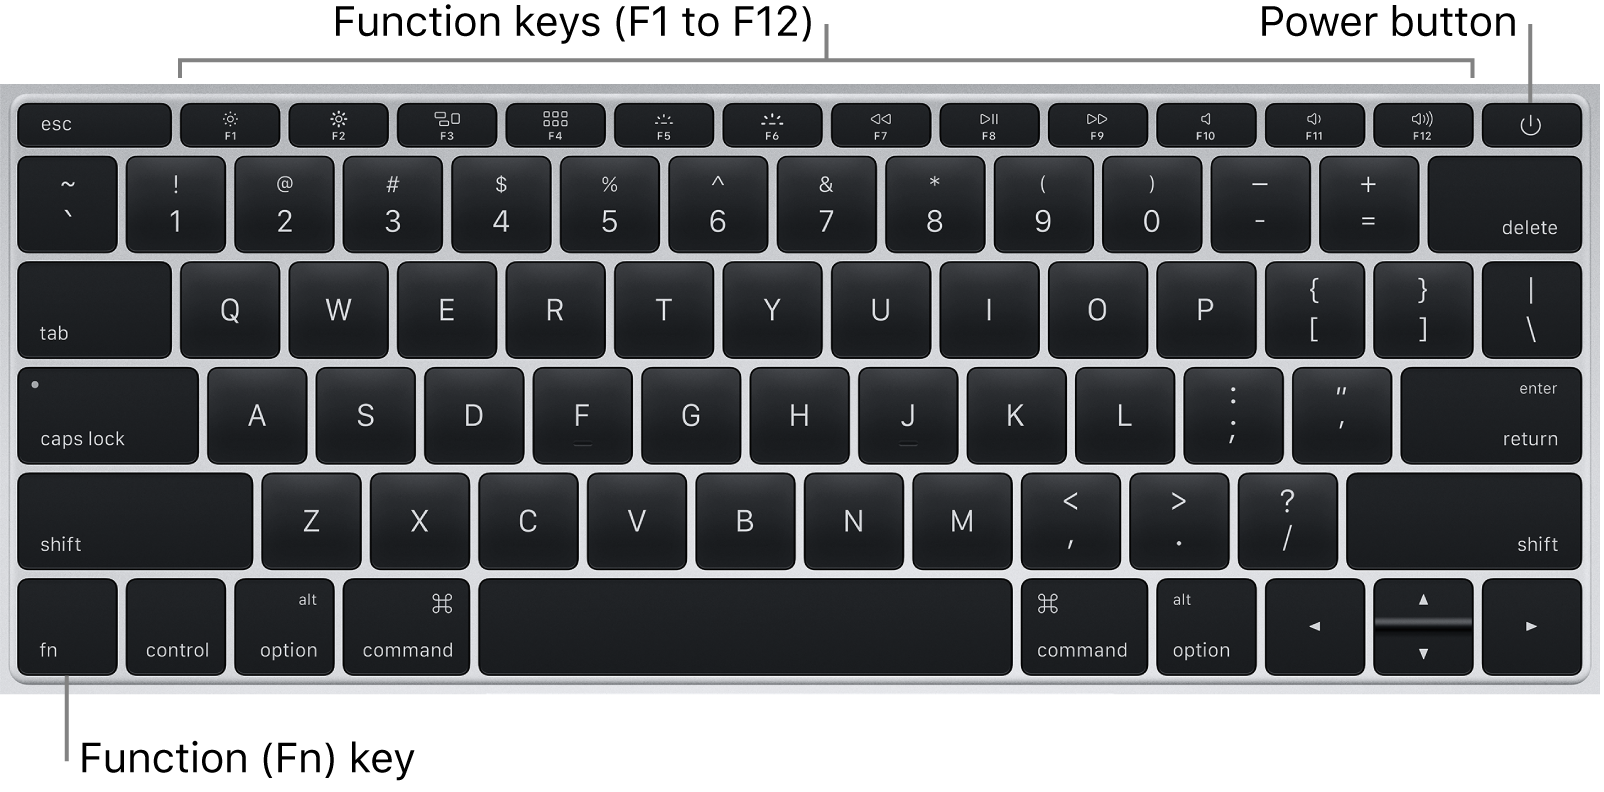 MacBook keyboard showing the function keys across the top, the Fn function key in the lower left corner, and the power button on the top right edge of the keyboard.